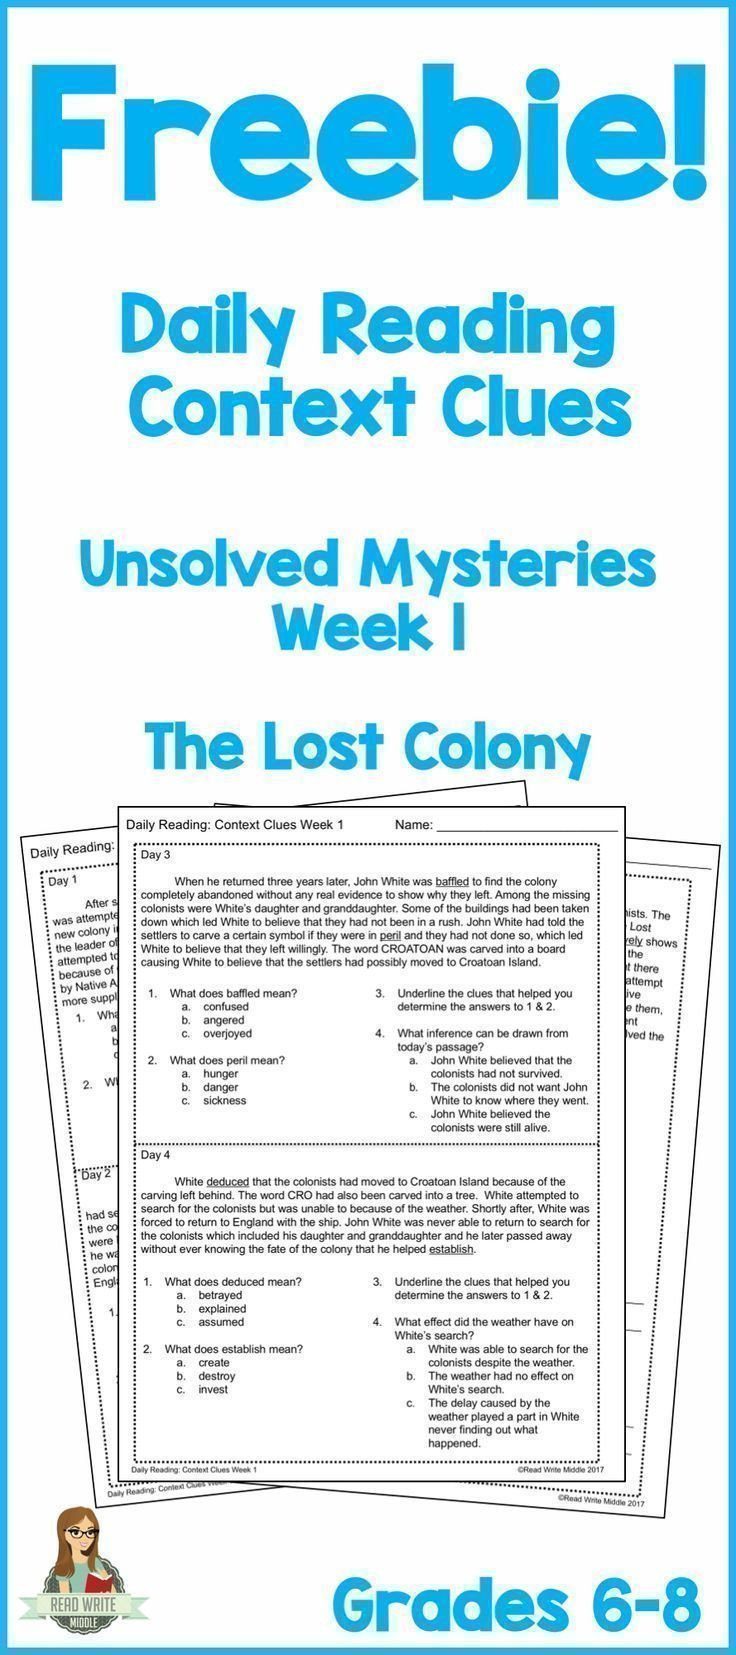 Reading In Context Worksheets Daily Reading Context Clues Week 1